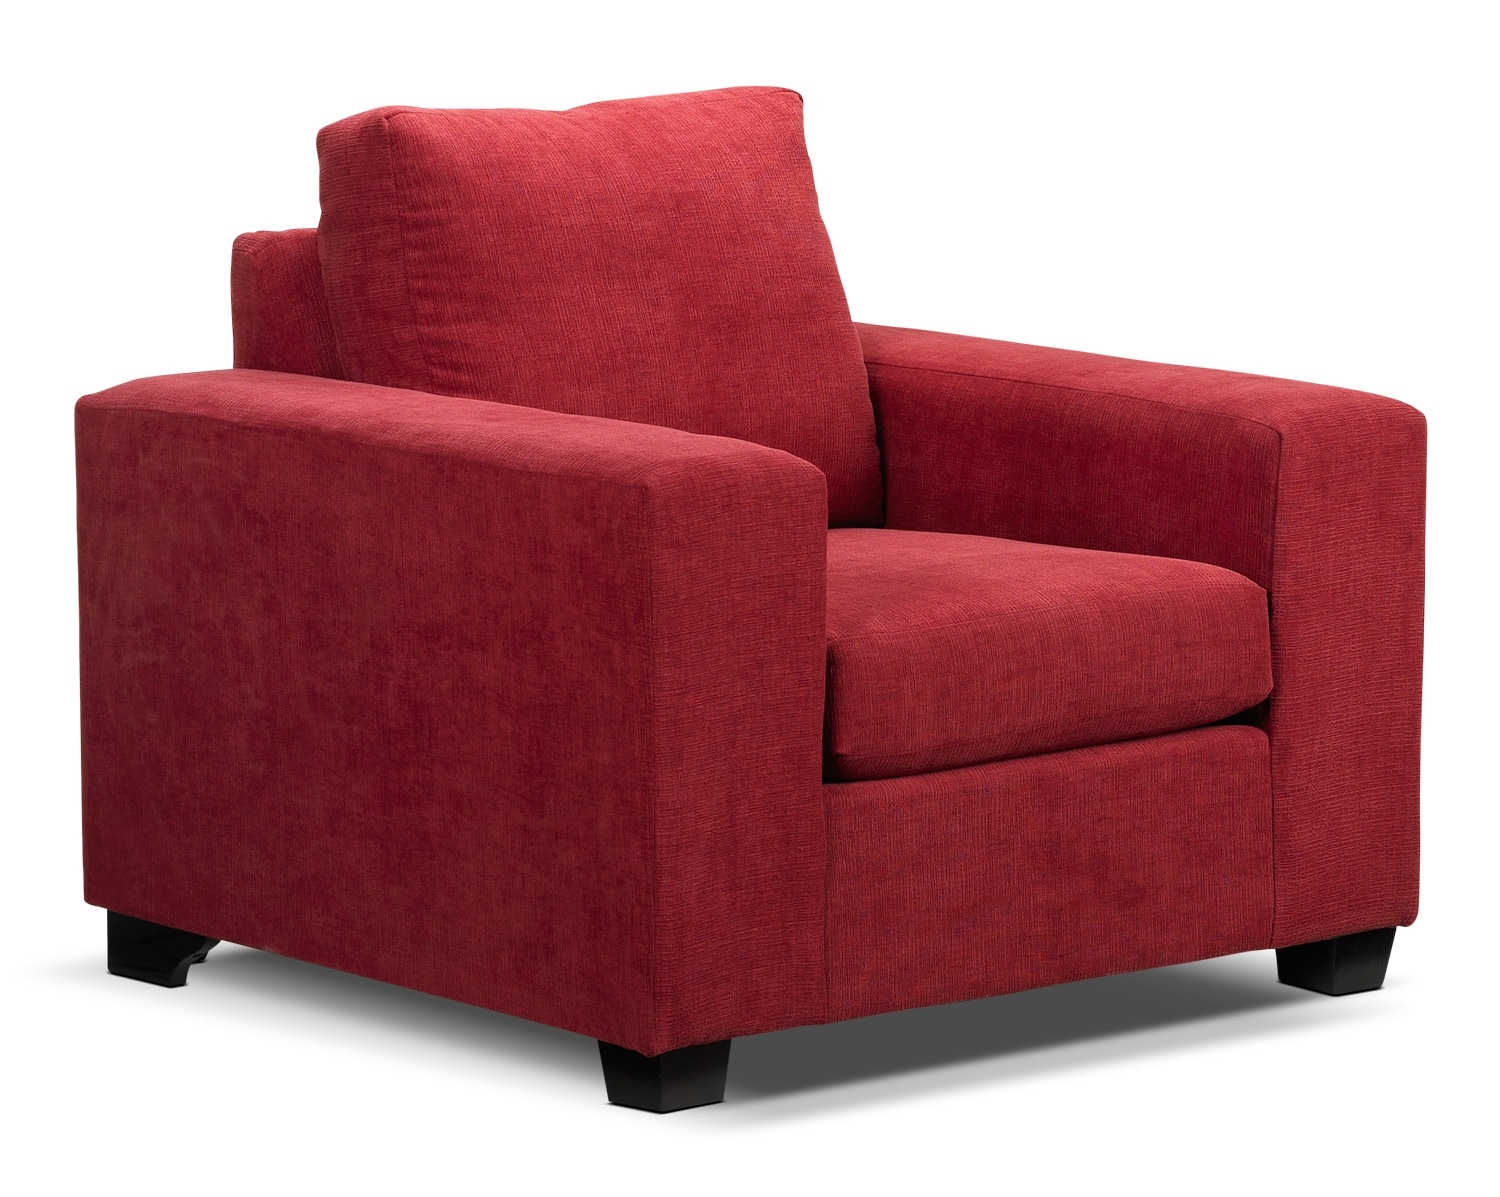 Living Room Furniture - Fava Chair - Red